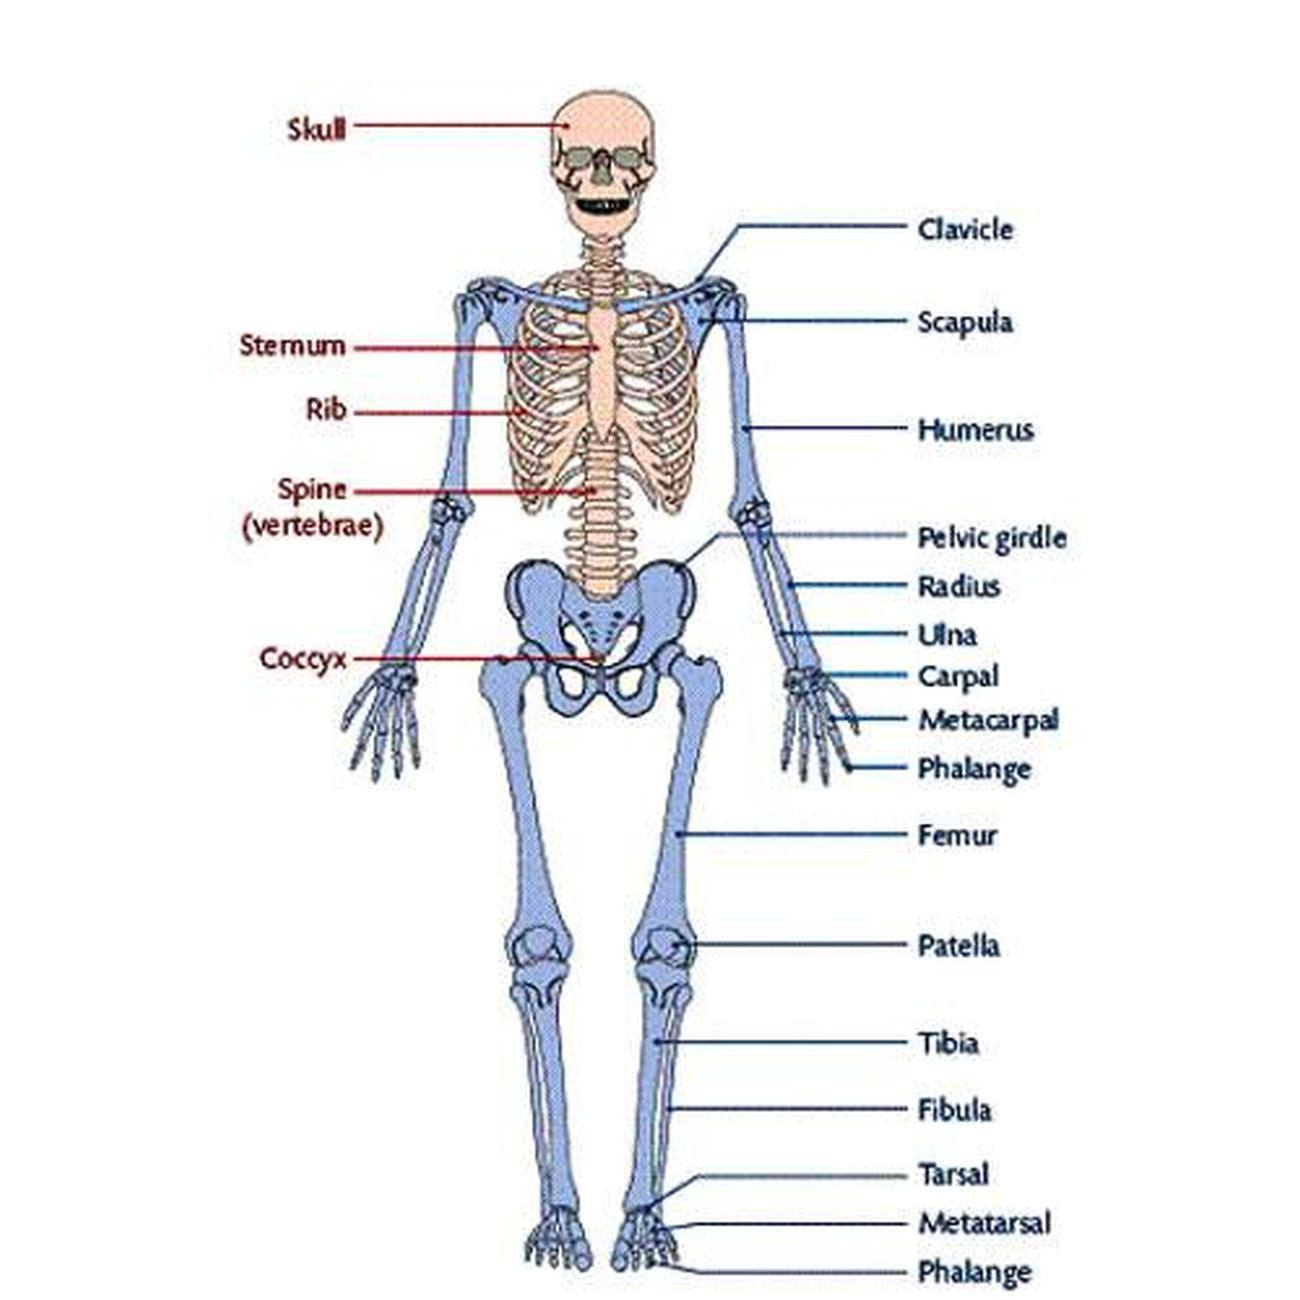 axial skeleton skull diagram polaris 280 pool cleaner parts pictures of appendicular